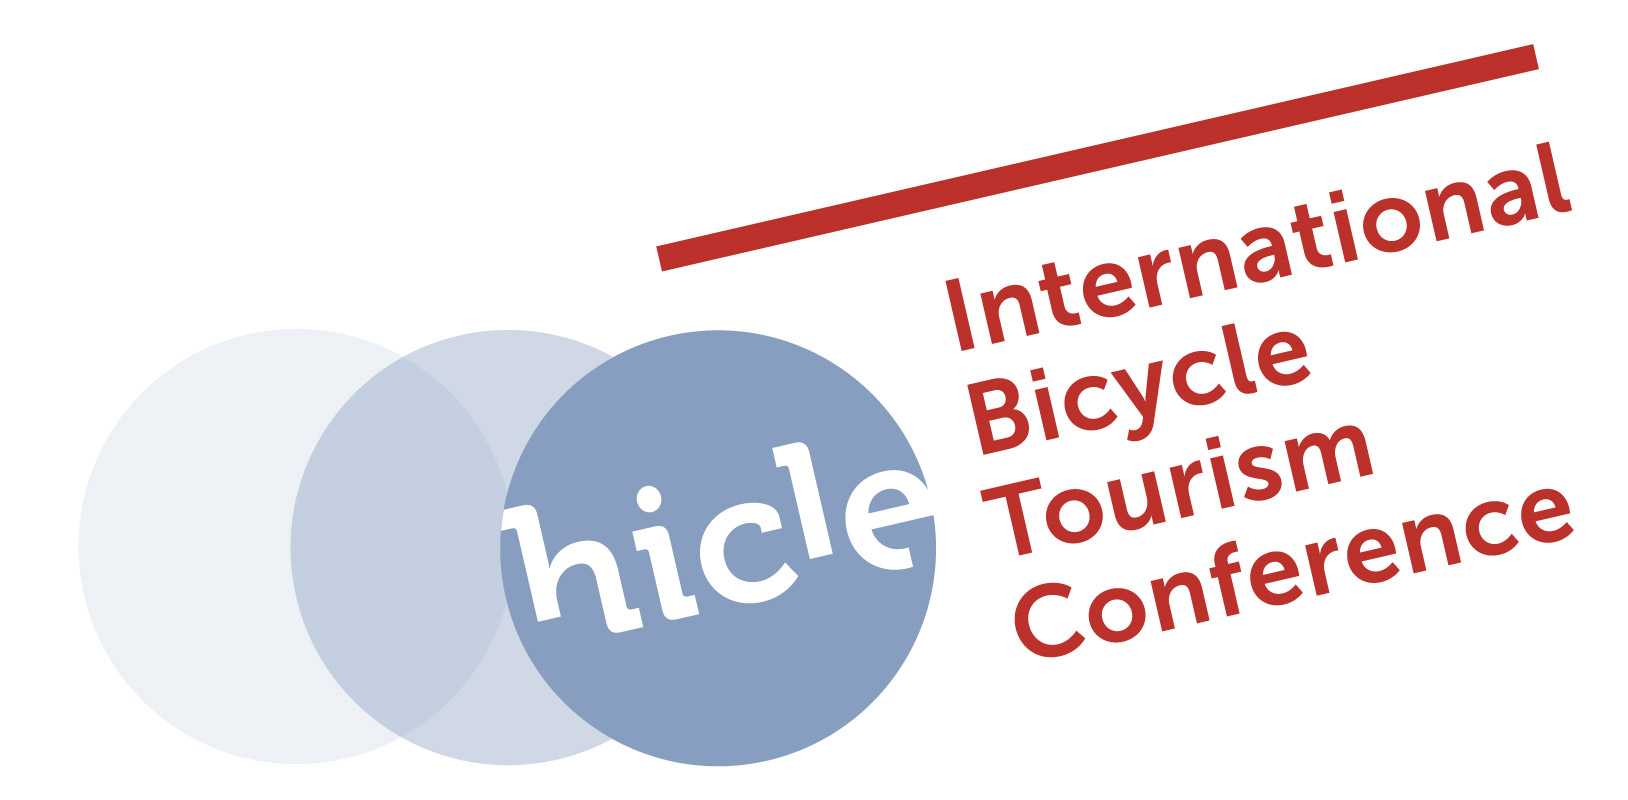 bicycle tourism conference logo ibtc